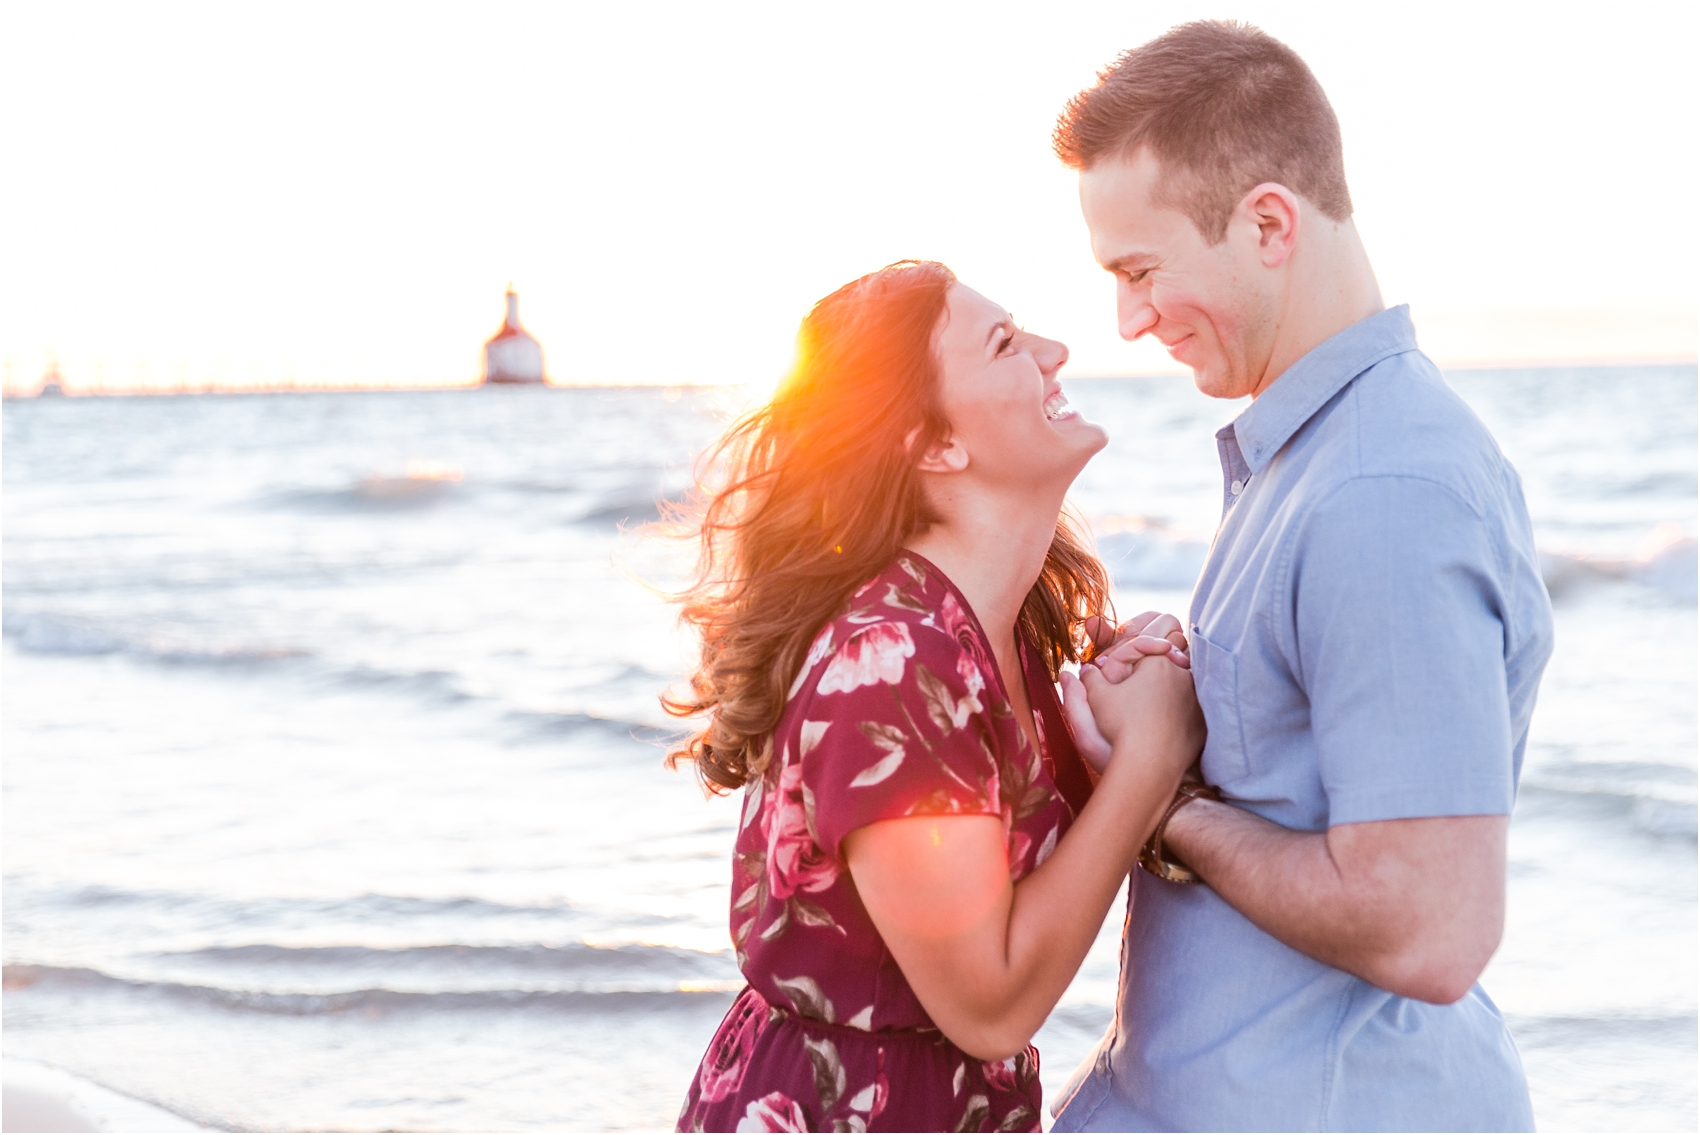 candid-end-of-summer-sunset-engagement-photos-at-silver-beach-in-st-joseph-mi-by-courtney-carolyn-photography_0035.jpg